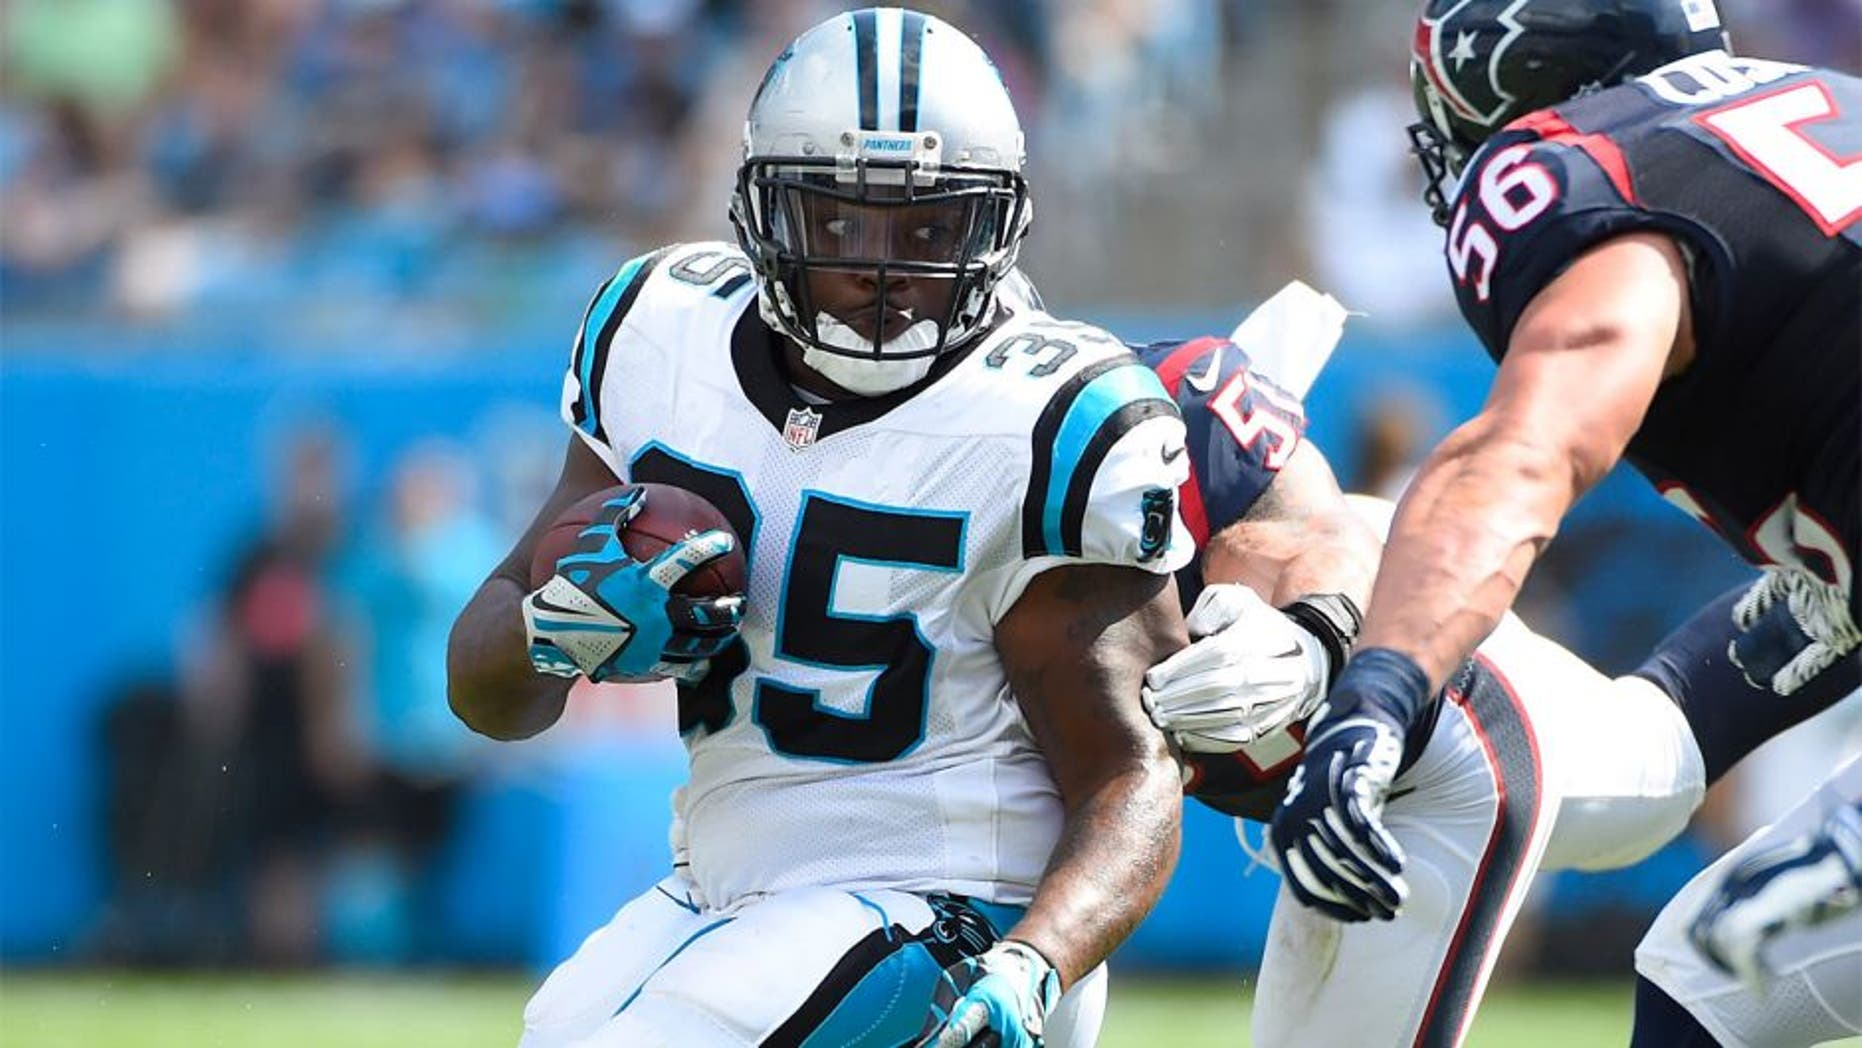 Sep 20, 2015; Charlotte, NC, USA; Carolina Panthers fullback Mike Tolbert (35) with the ball as Houston Texans outside linebacker John Simon (51) and inside linebacker Brian Cushing (56) defend in the third quarter. The Panthers defeated the Texans 24-17 at Bank of America Stadium. Mandatory Credit: Bob Donnan-USA TODAY Sports